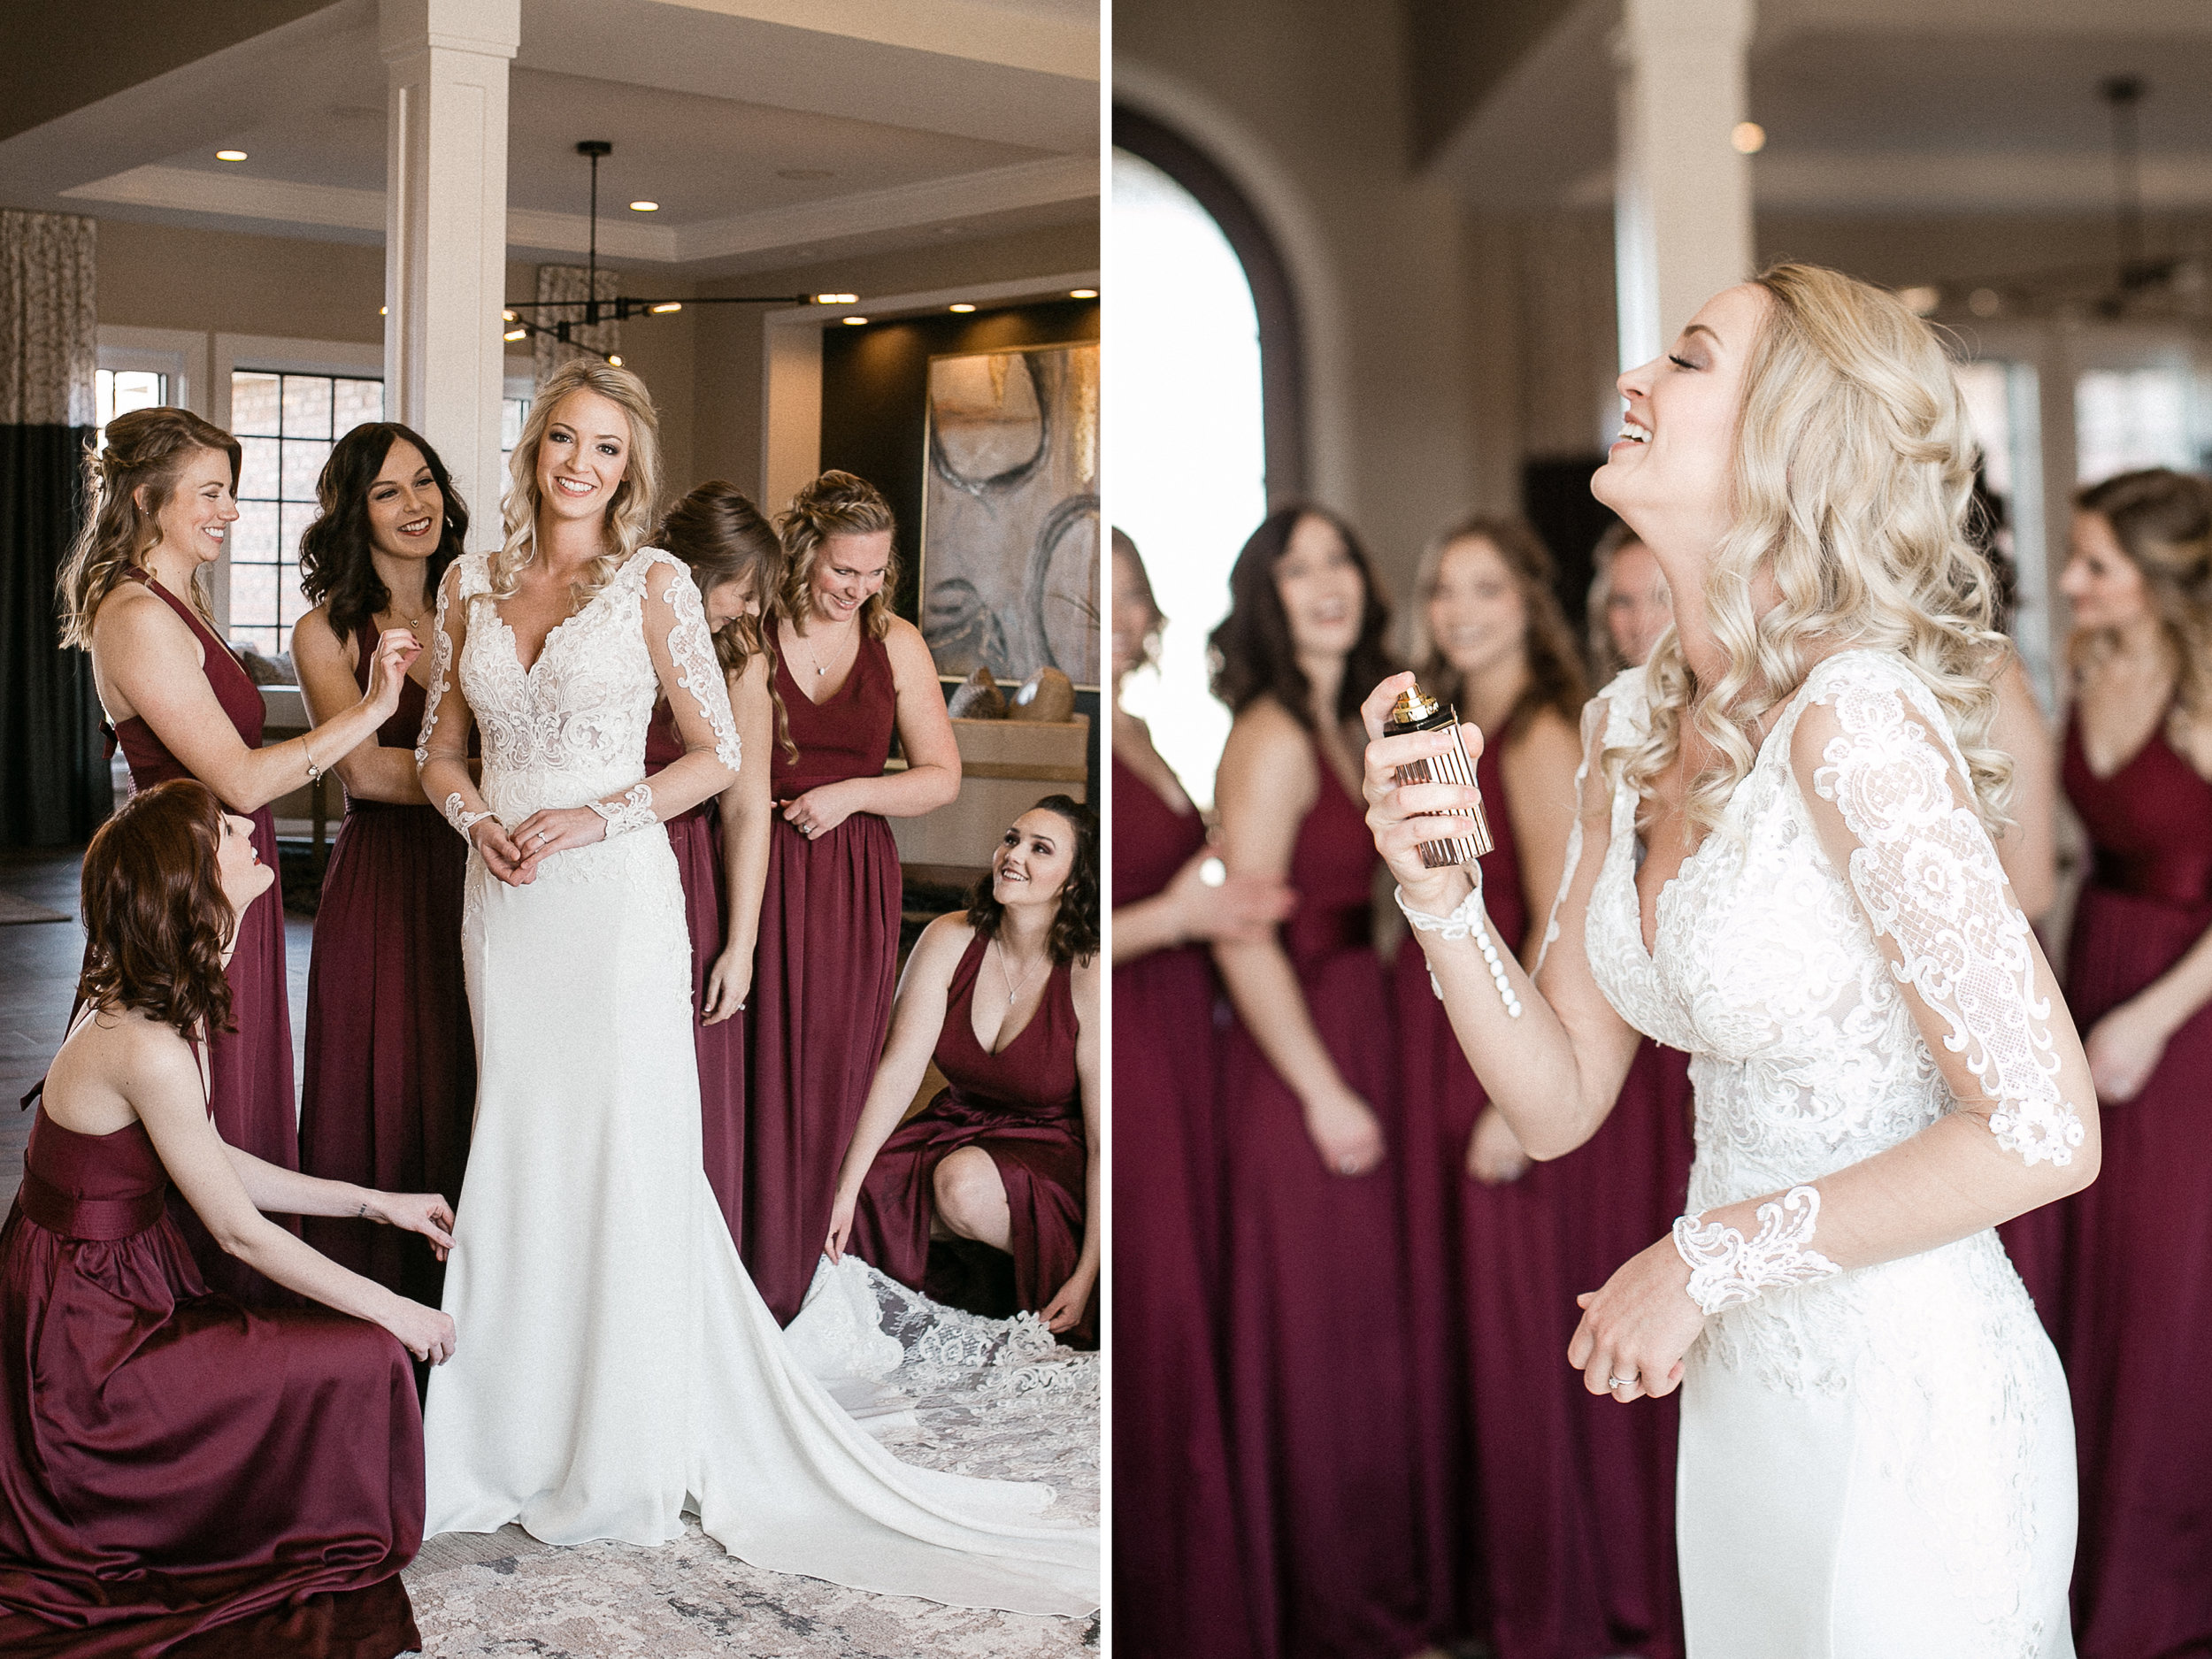 bride-bridesmaids-getting-ready.jpg